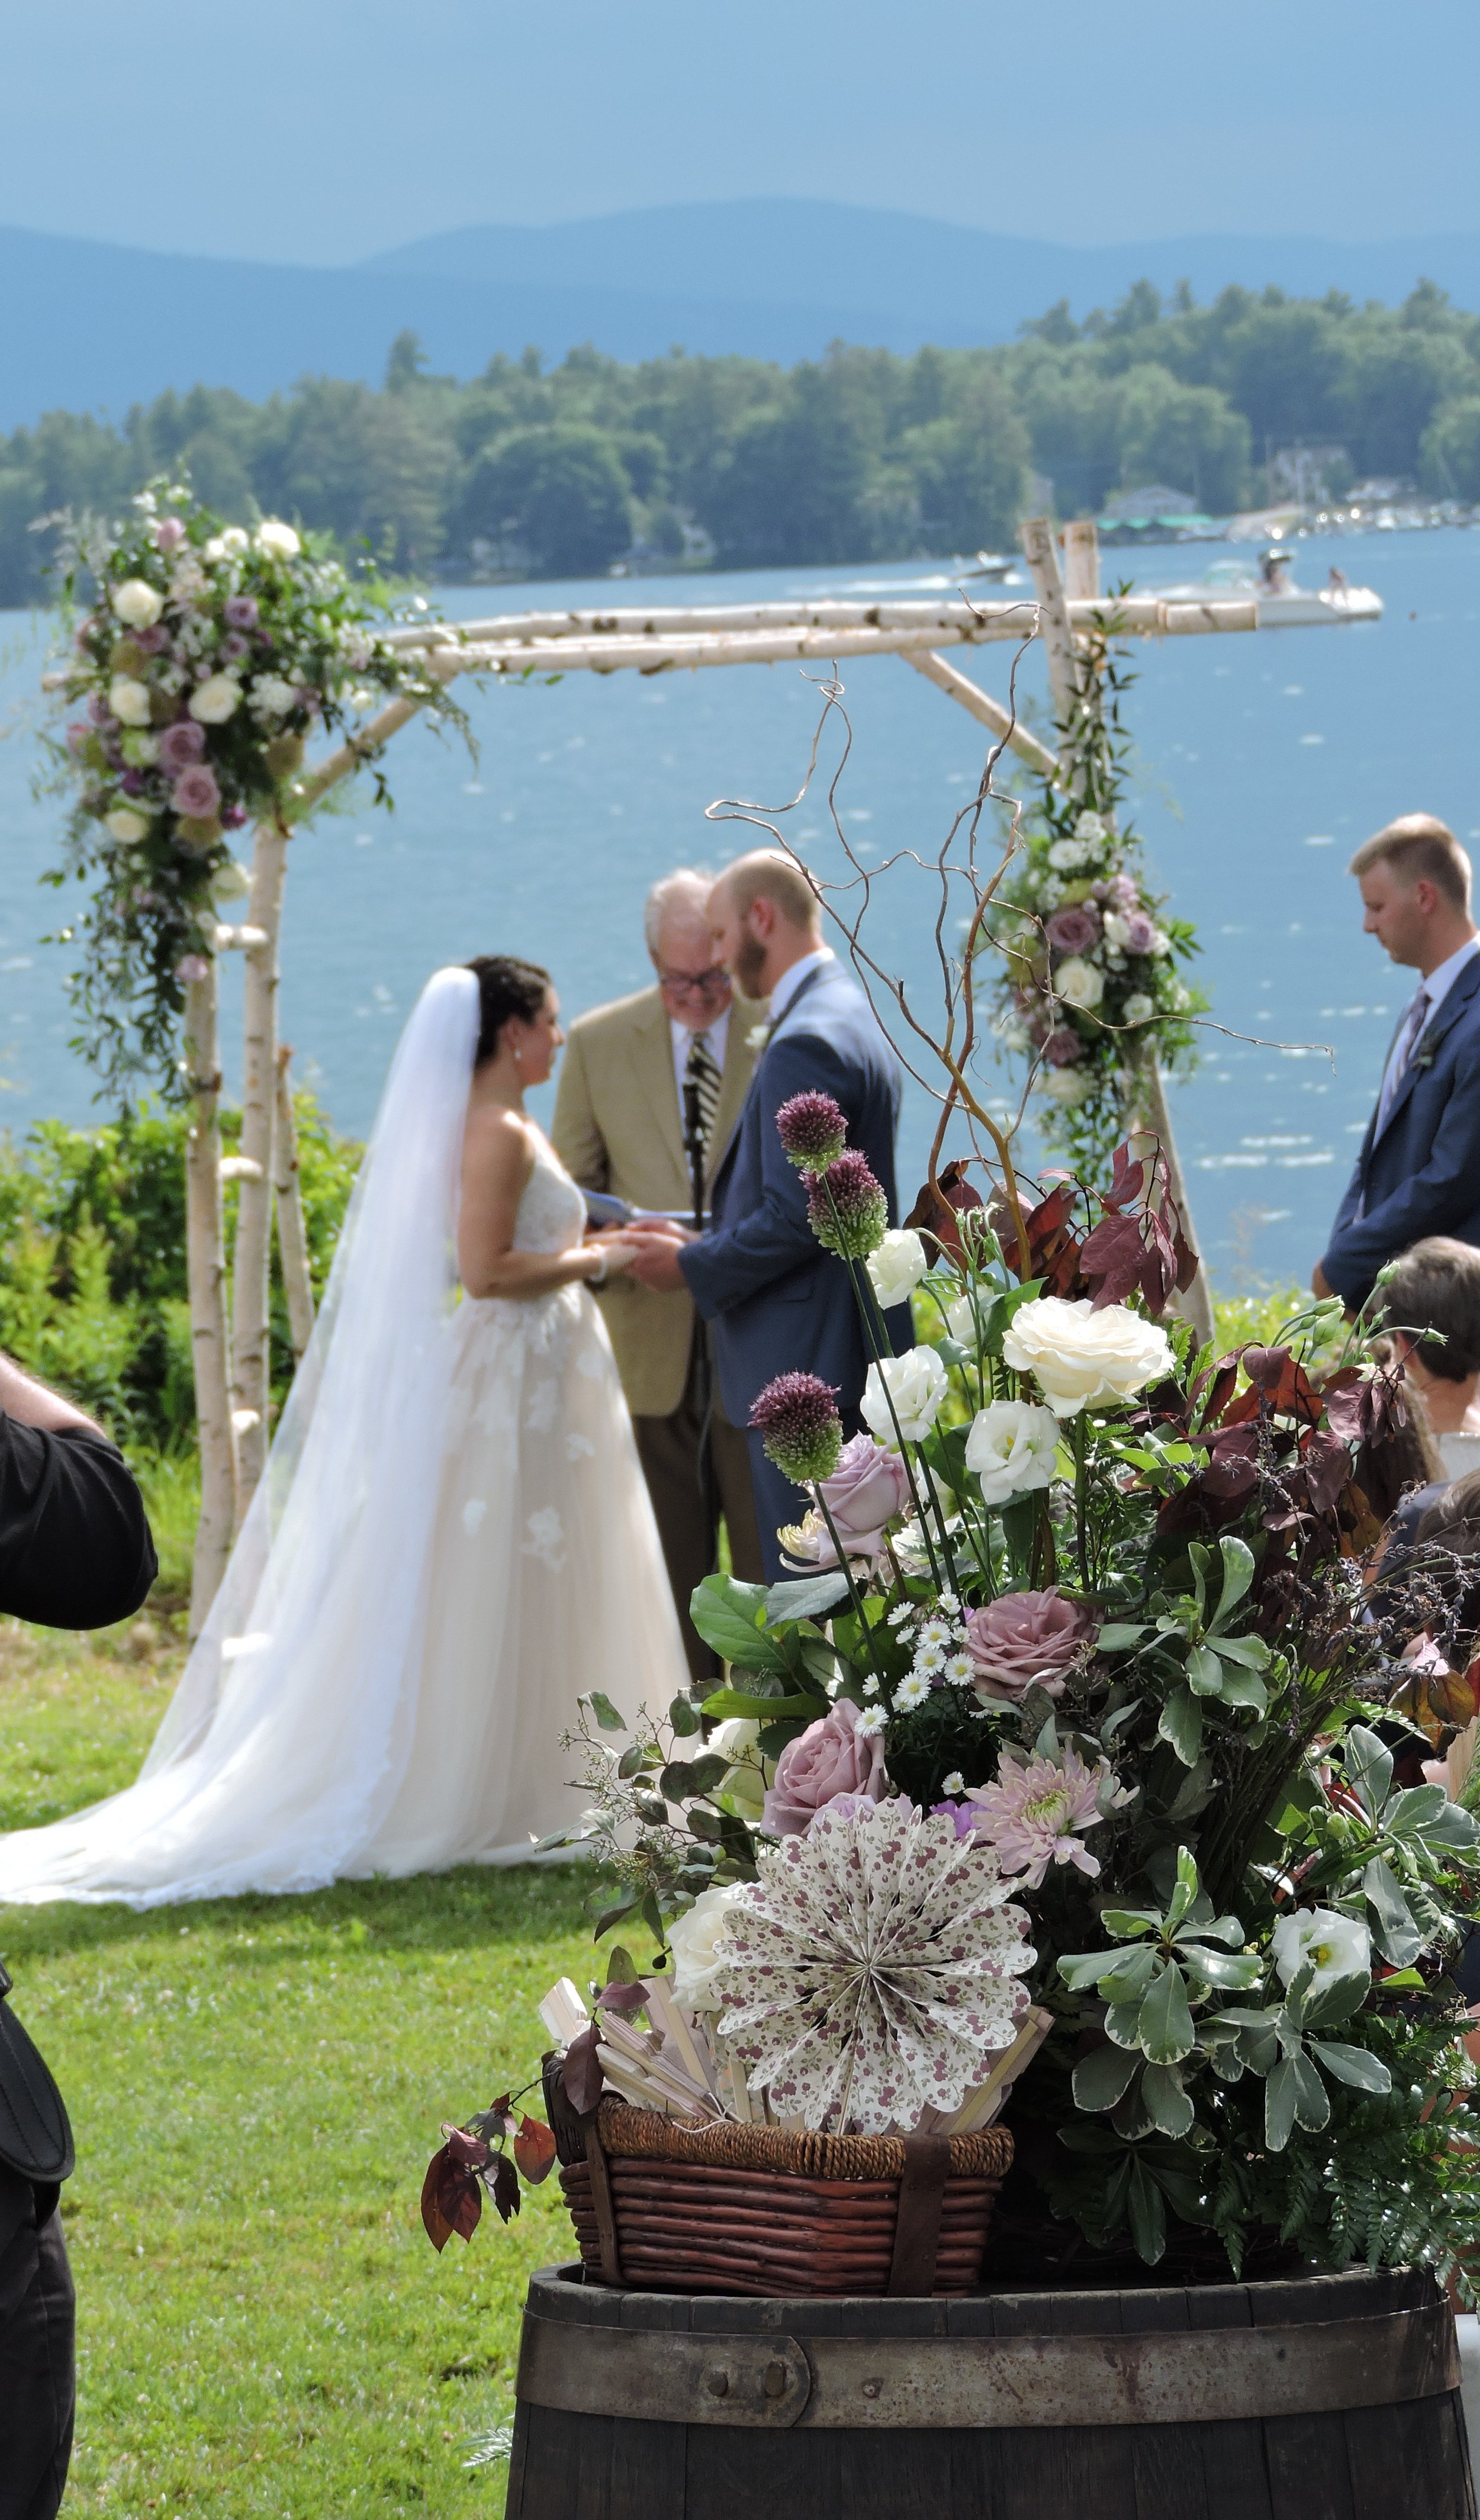 Wedding at Brewster Academy, NH with birch arbor on Lake Winnipesaukee